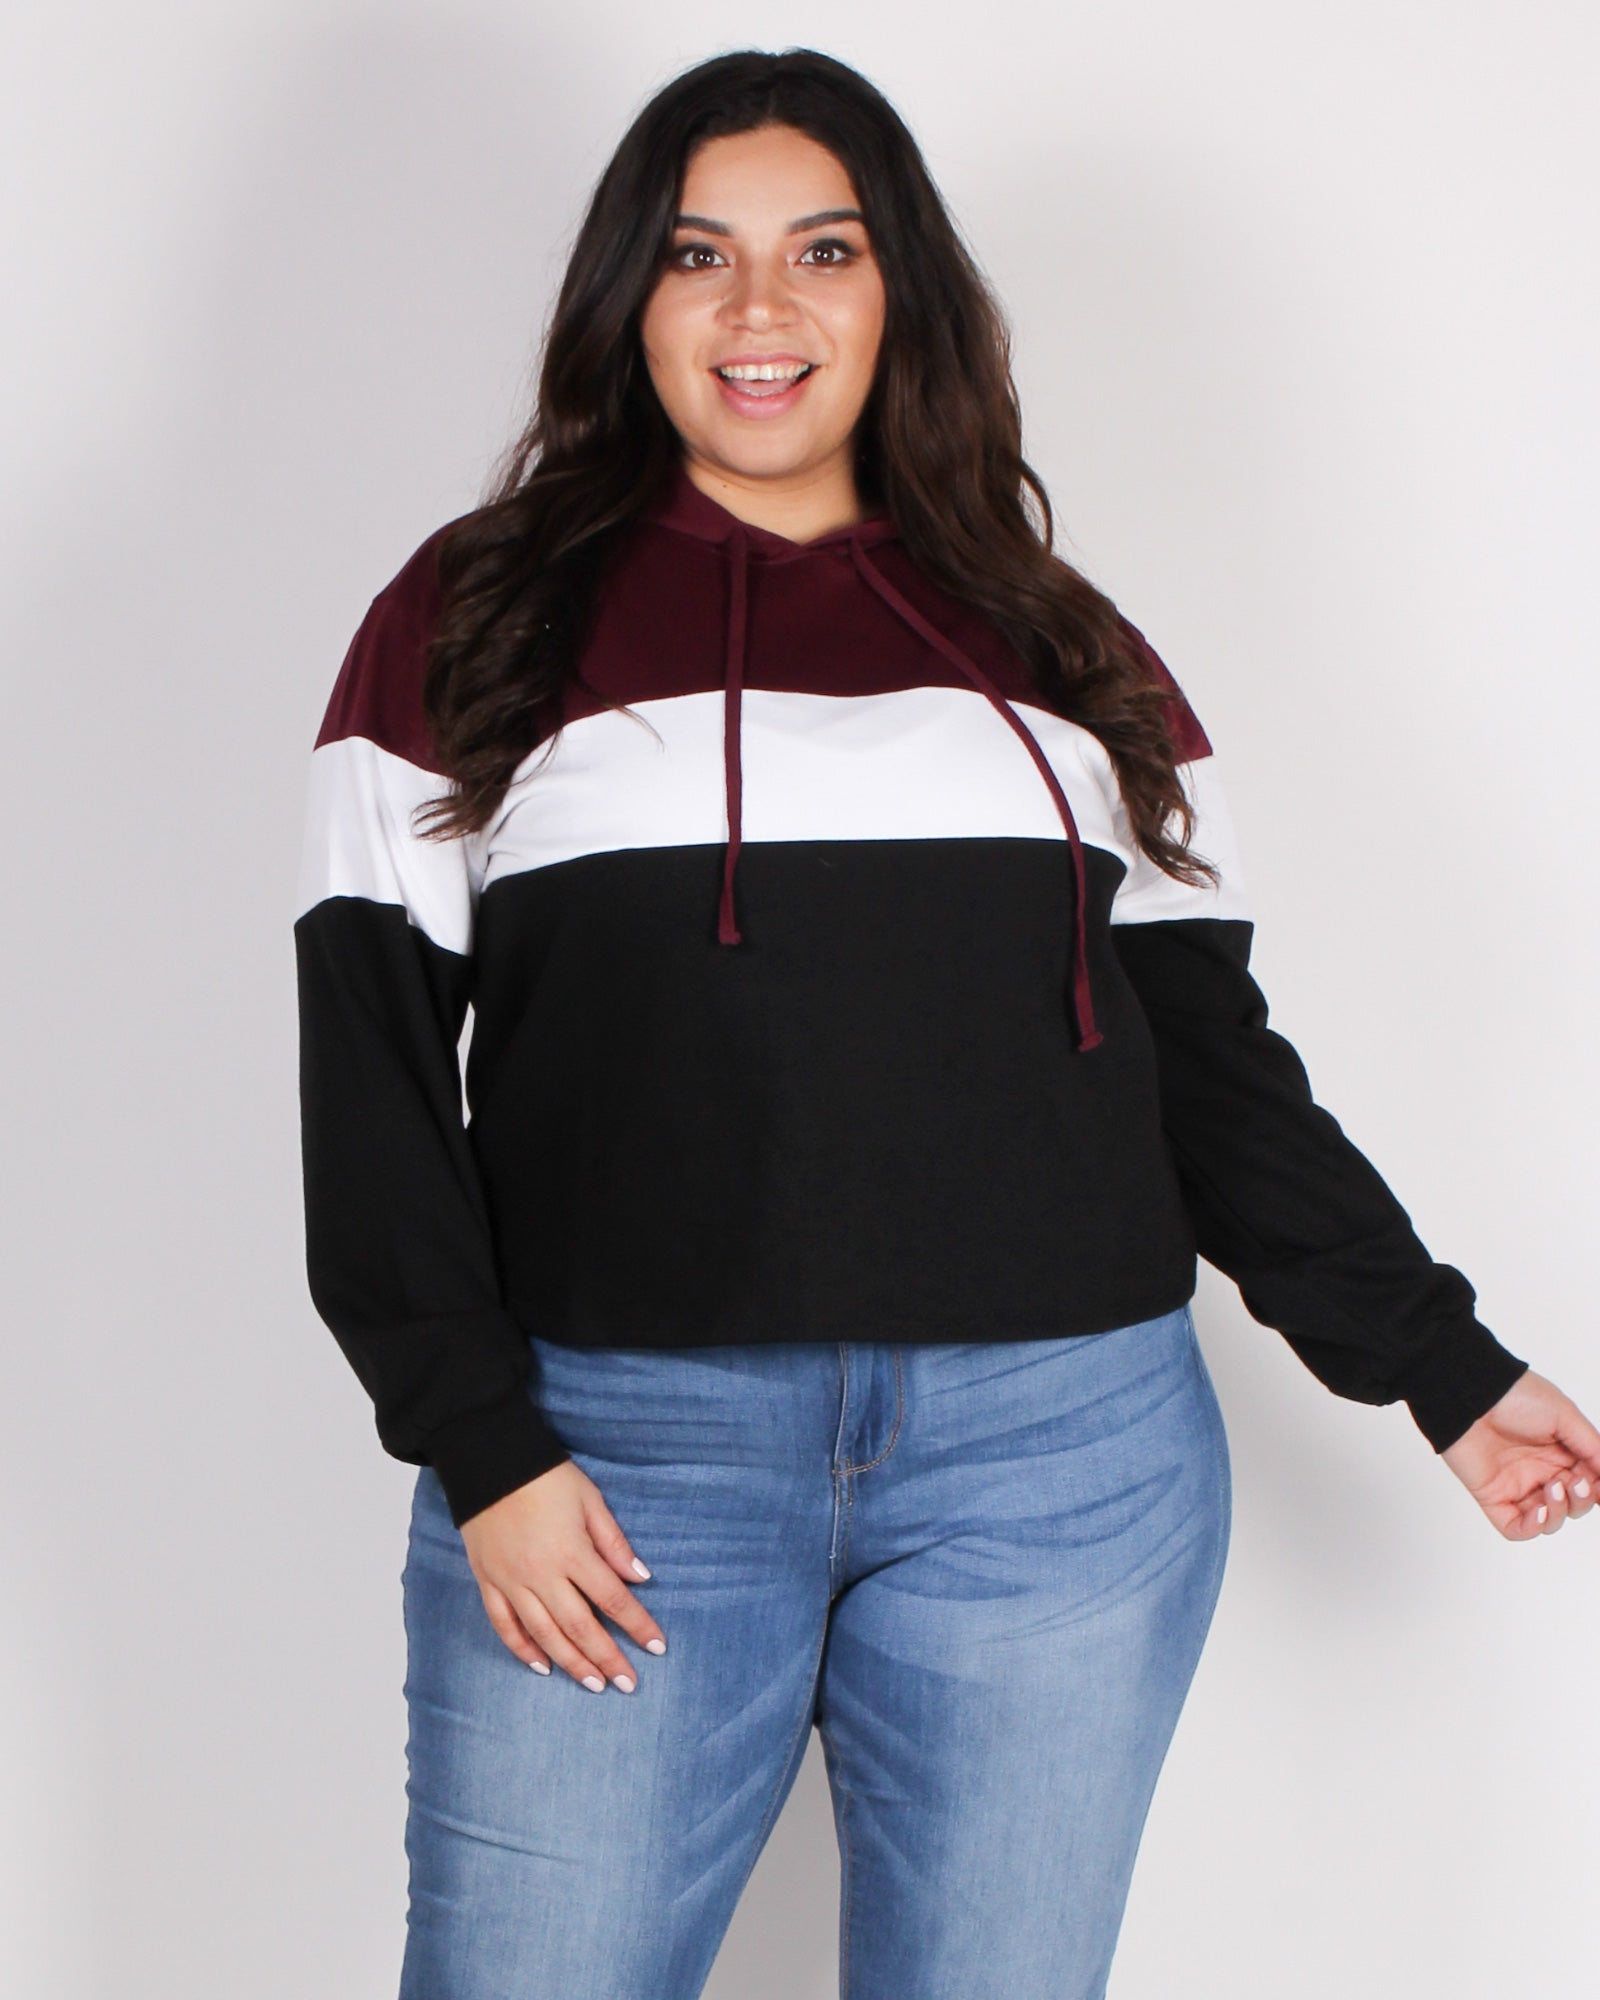 Fashion Q Shop Q Go With the Flow Colorblock Plus Hoodie (Burgundy) 71266XL